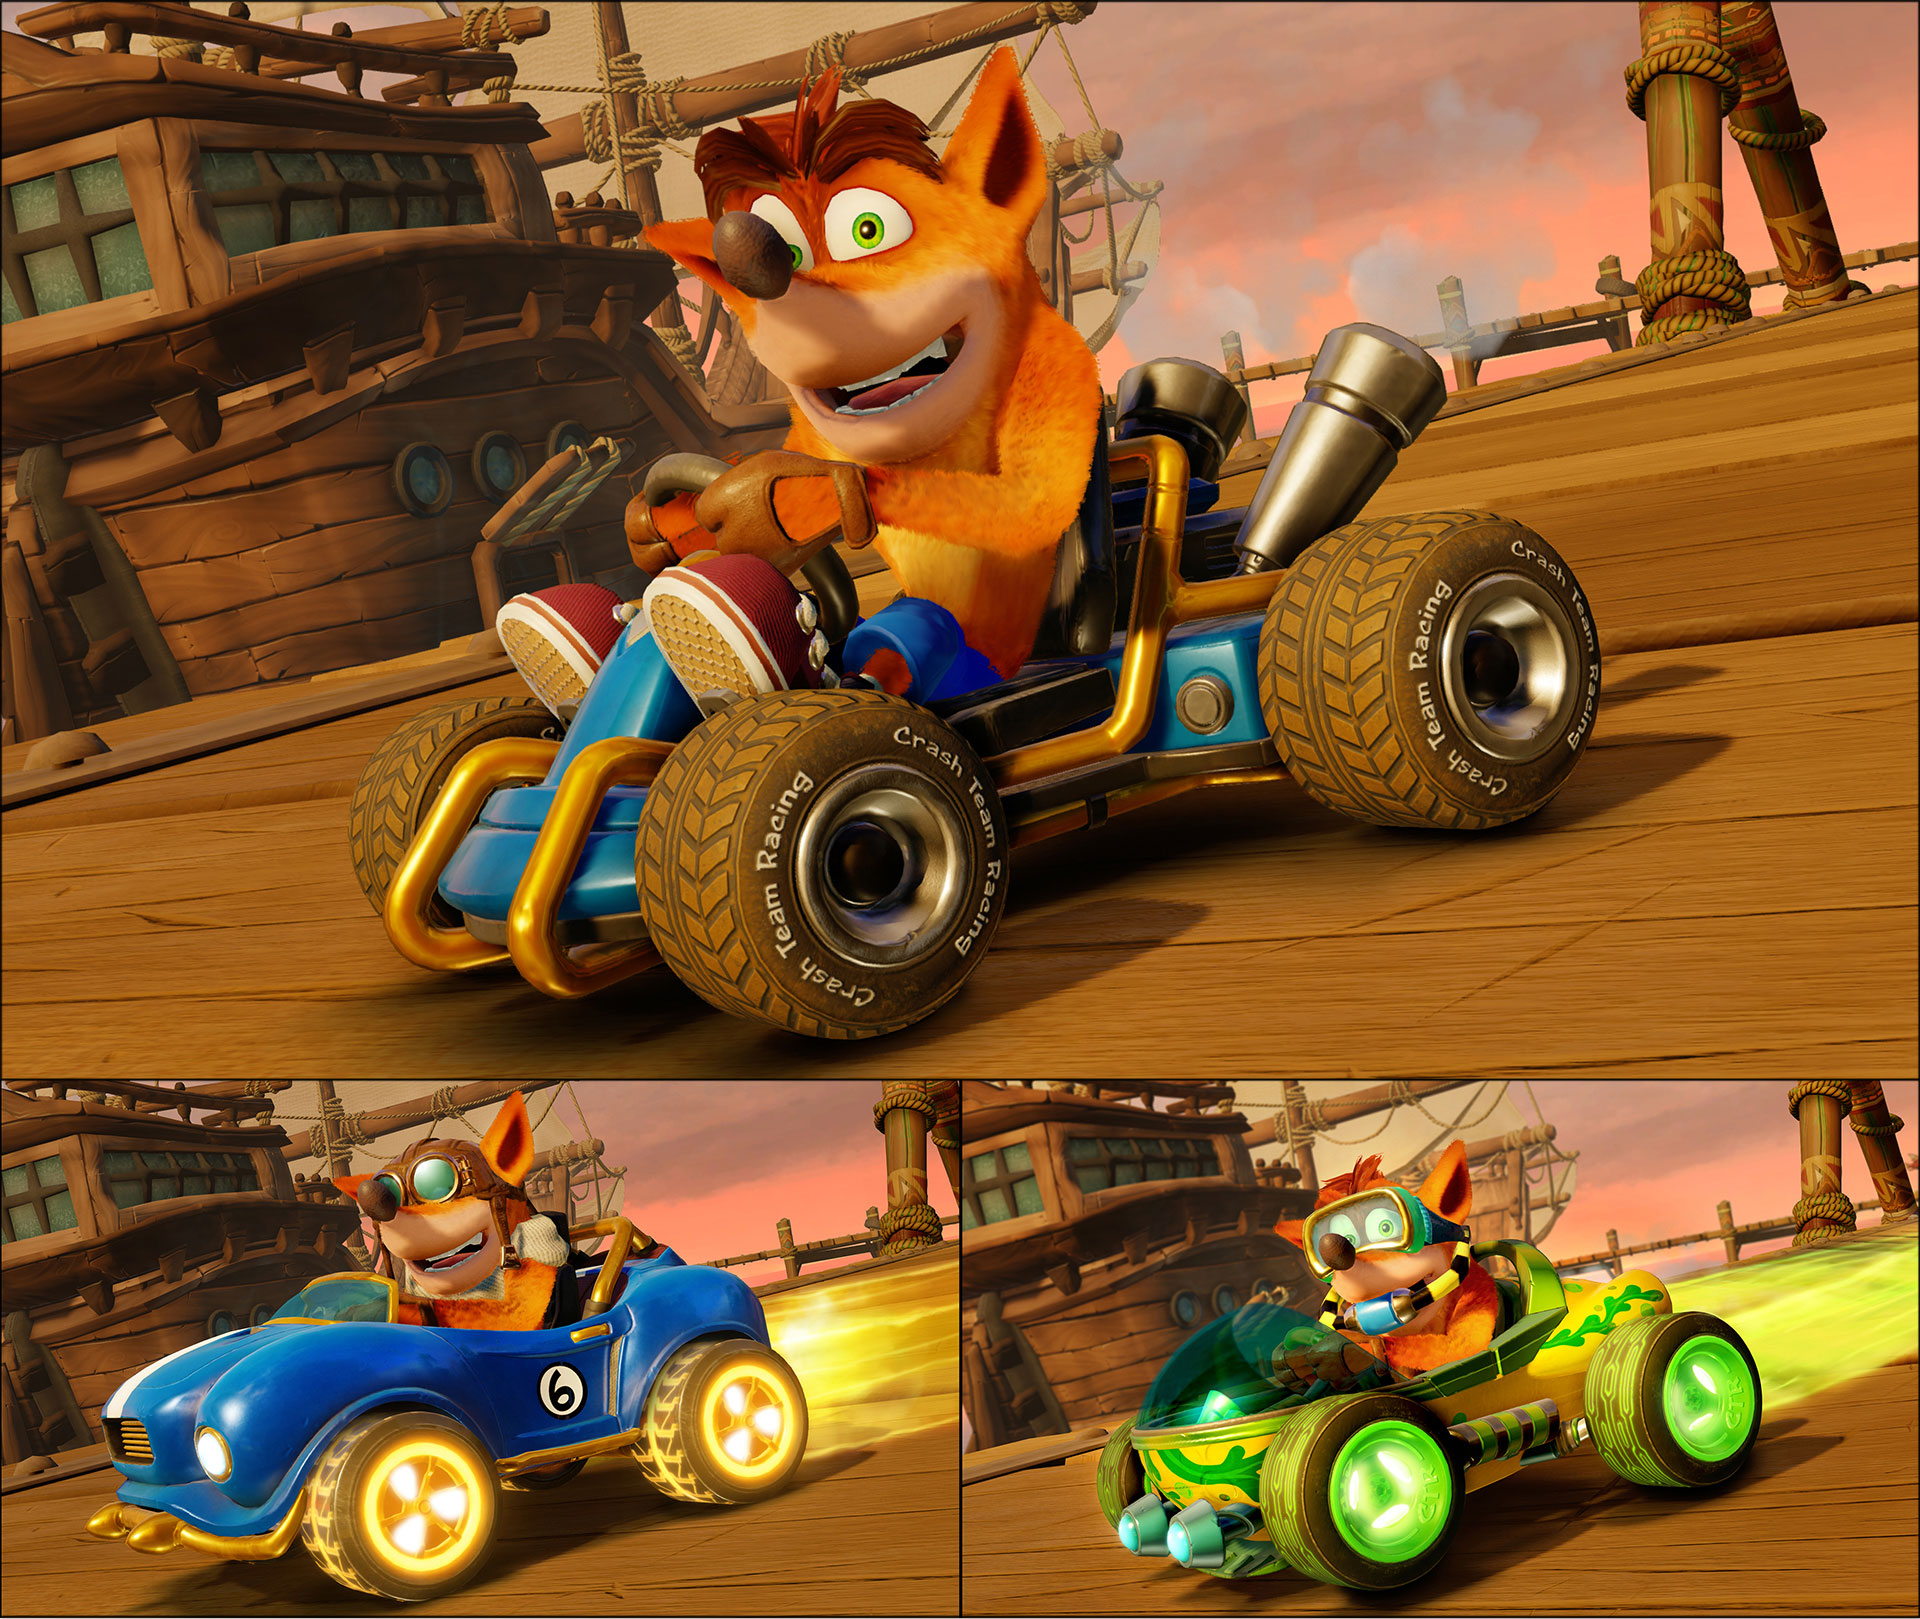 Daily news (May 10, Round 3): Crash Team Racing Nitro-Fueled